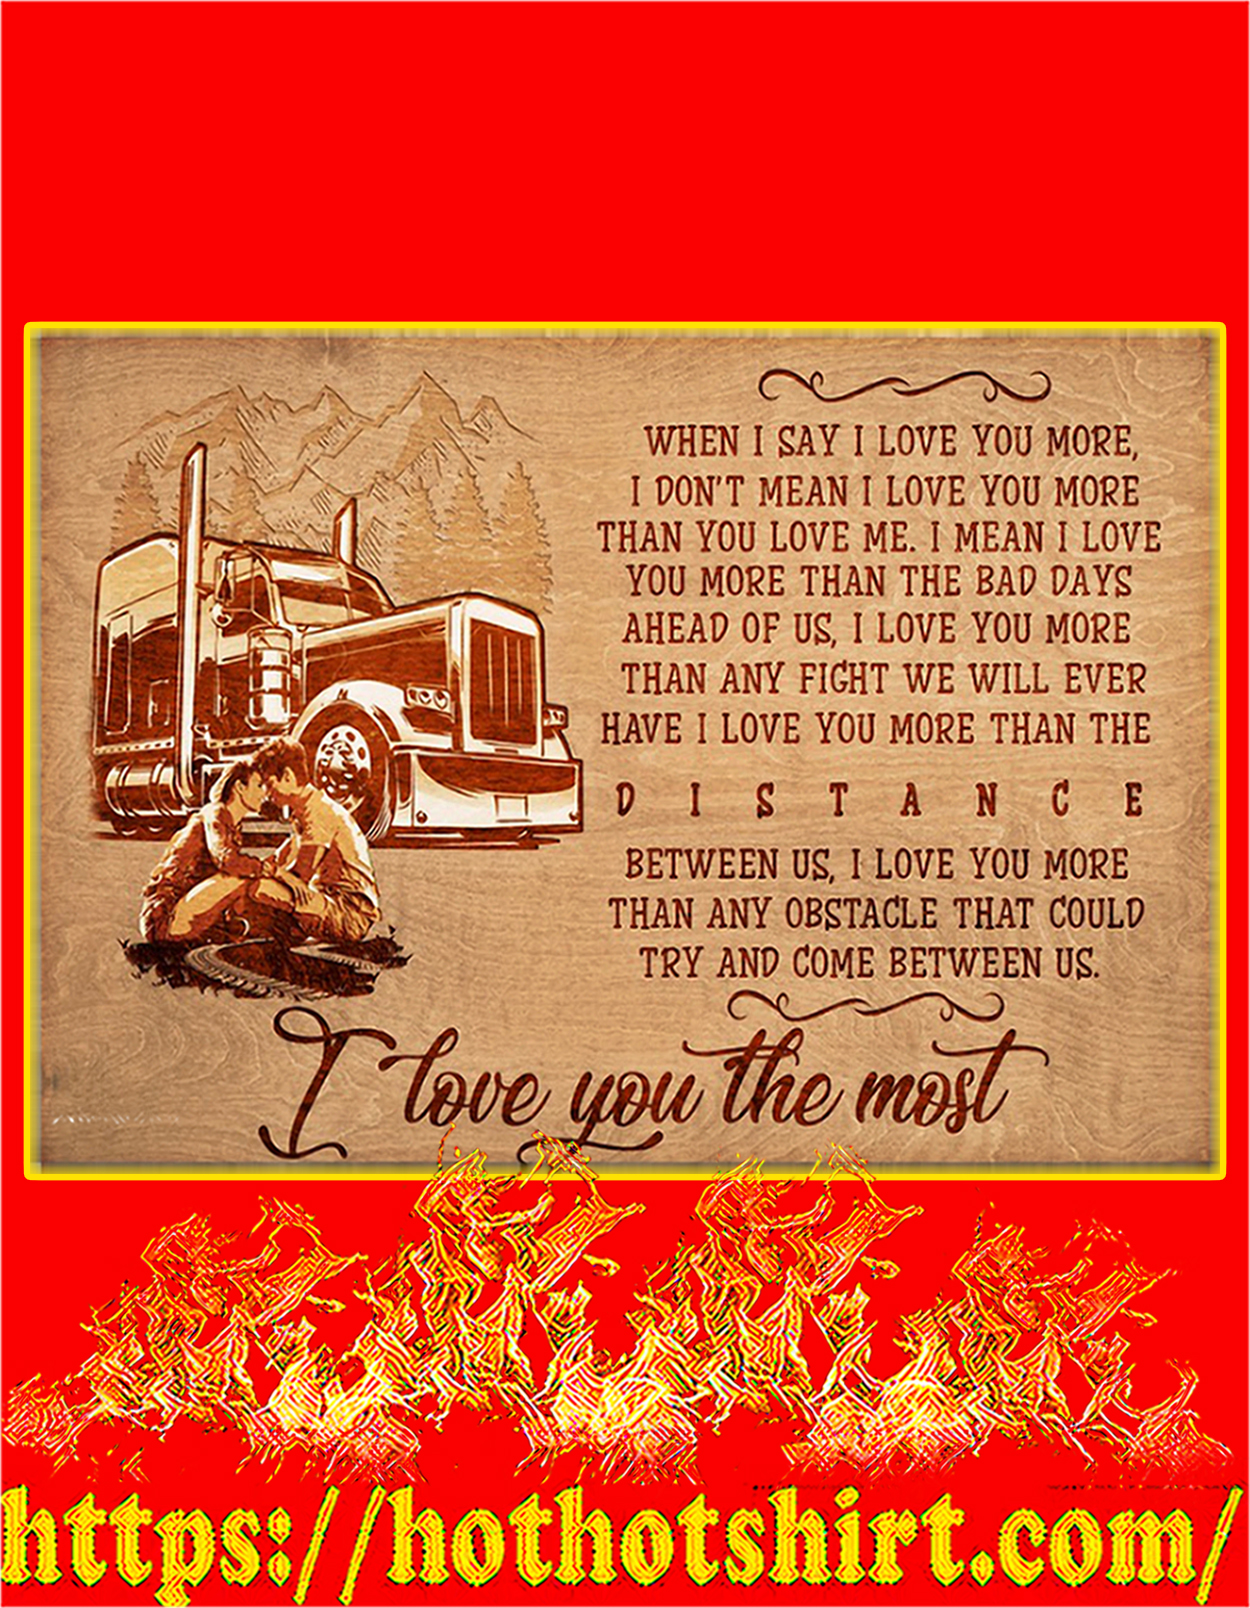 Trucker I love you the most poster - A3